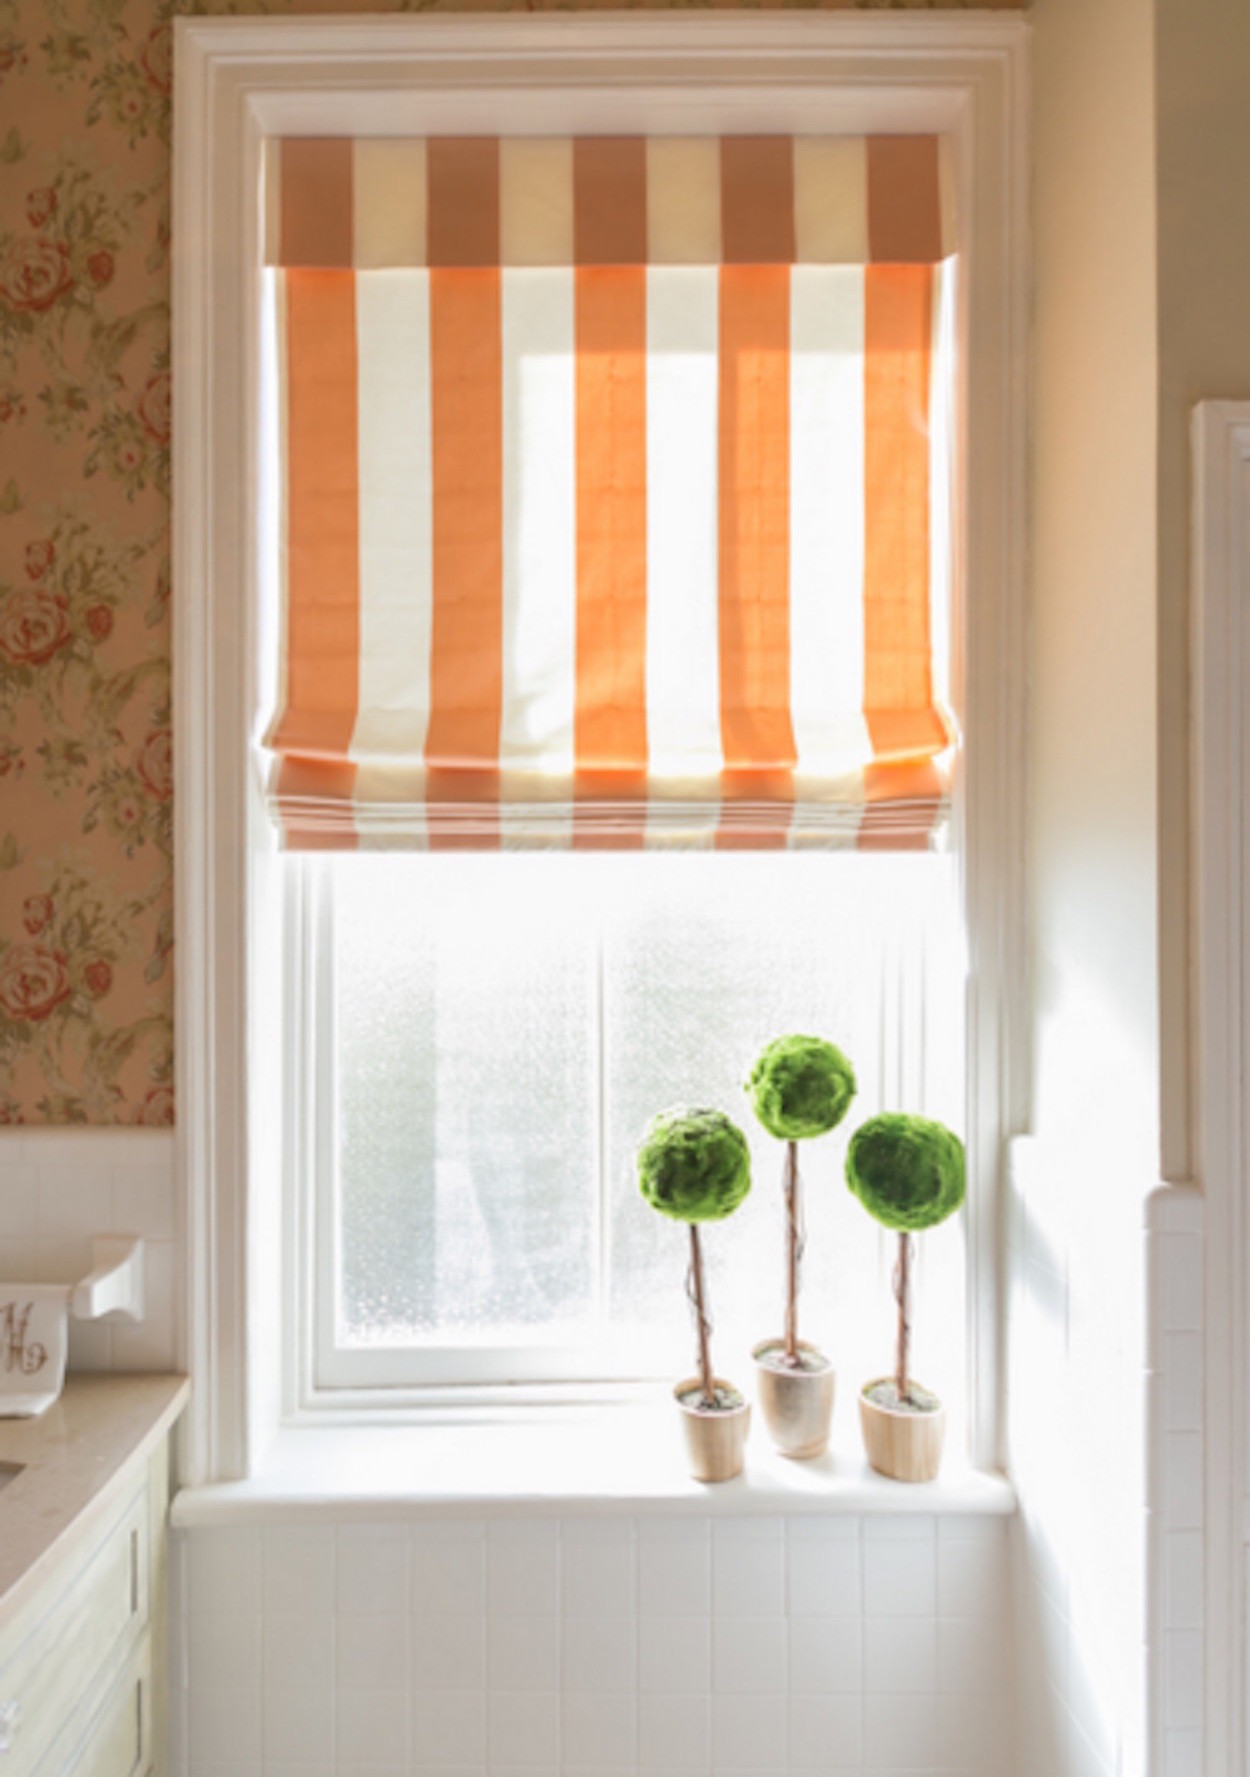 Different Bathroom Window Treatments You Might Not Have Thought - Small bathroom windows for small bathroom ideas